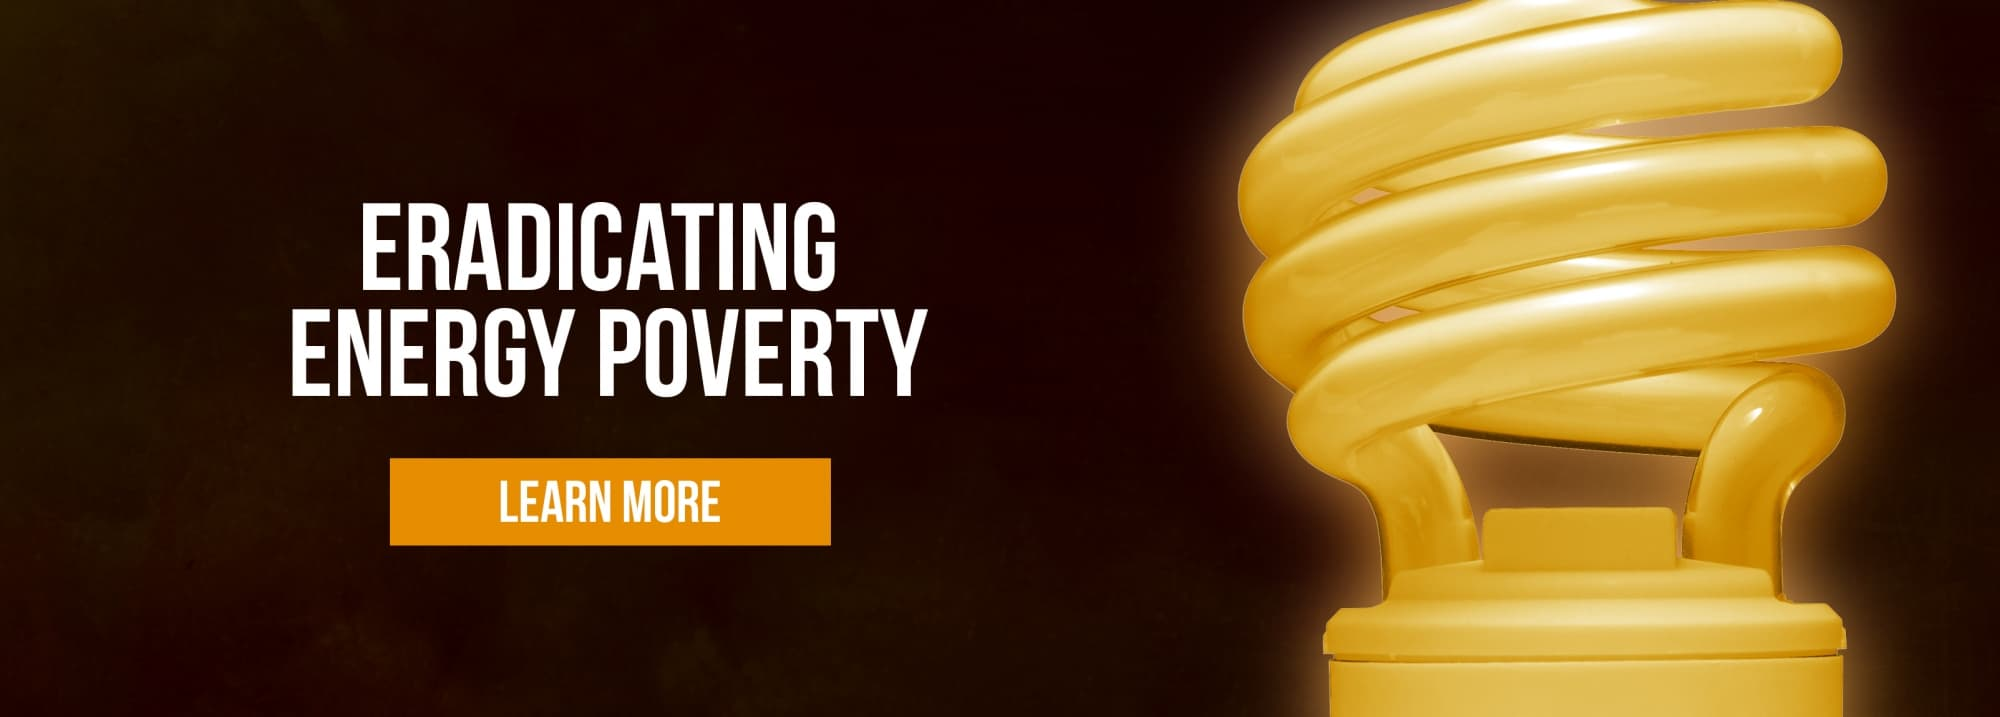 Eradicating Energy Poverty